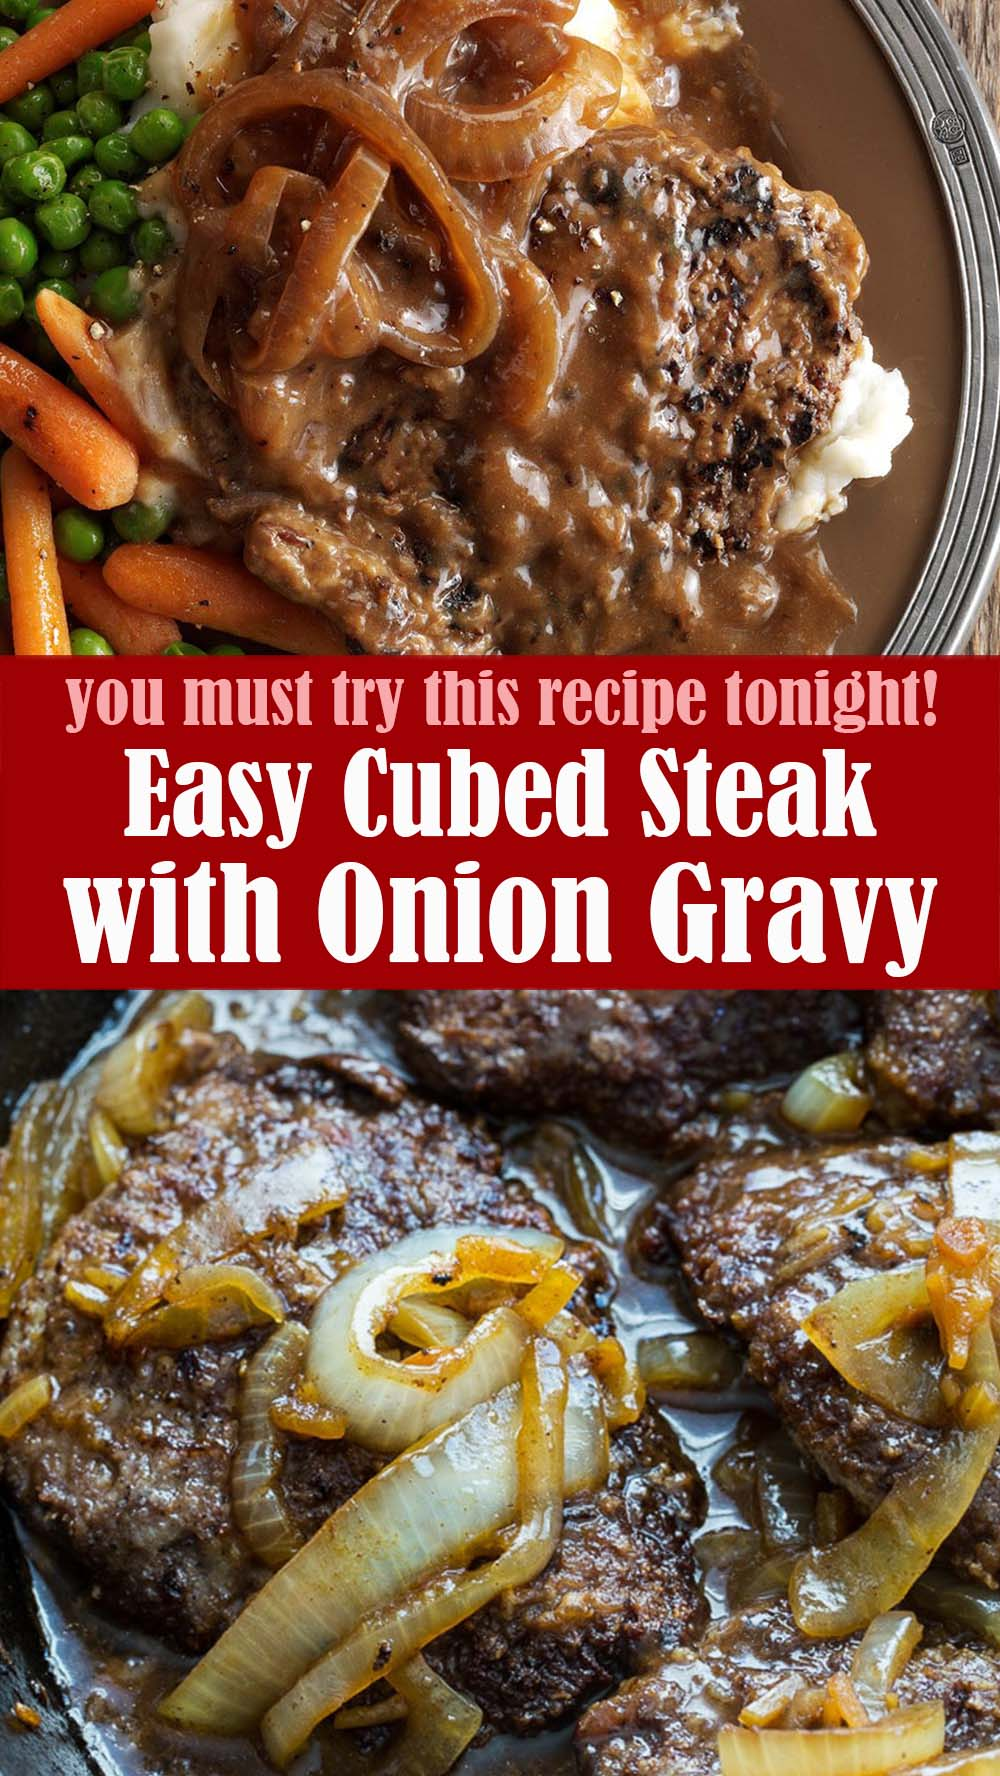 Easy Cubed Steak with Onion Gravy